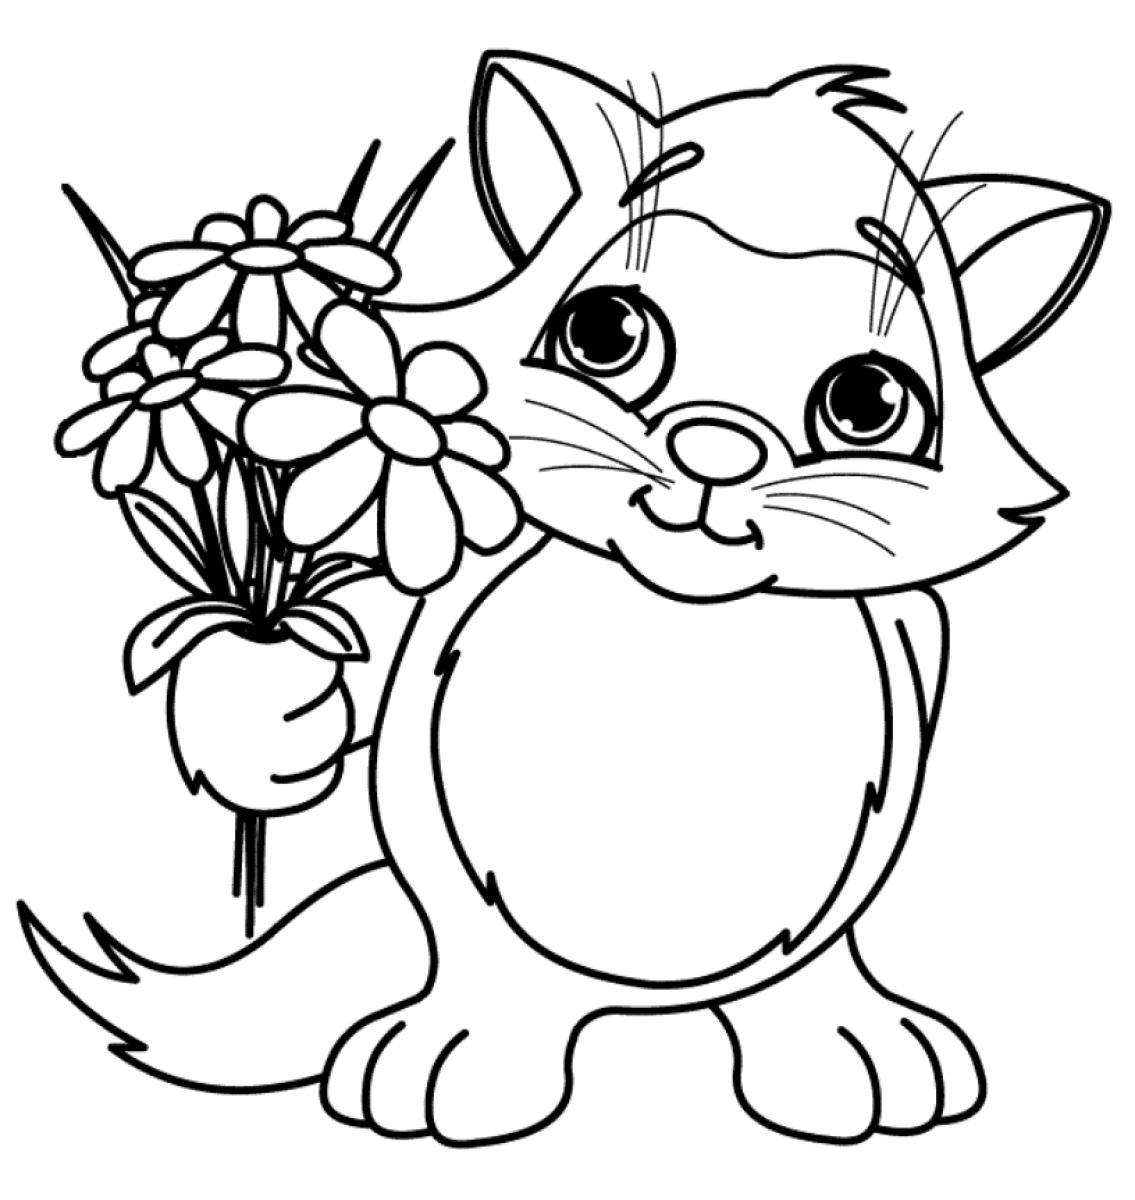 1135x1200 Spring Flower Coloring Pages To Download And Print For Free